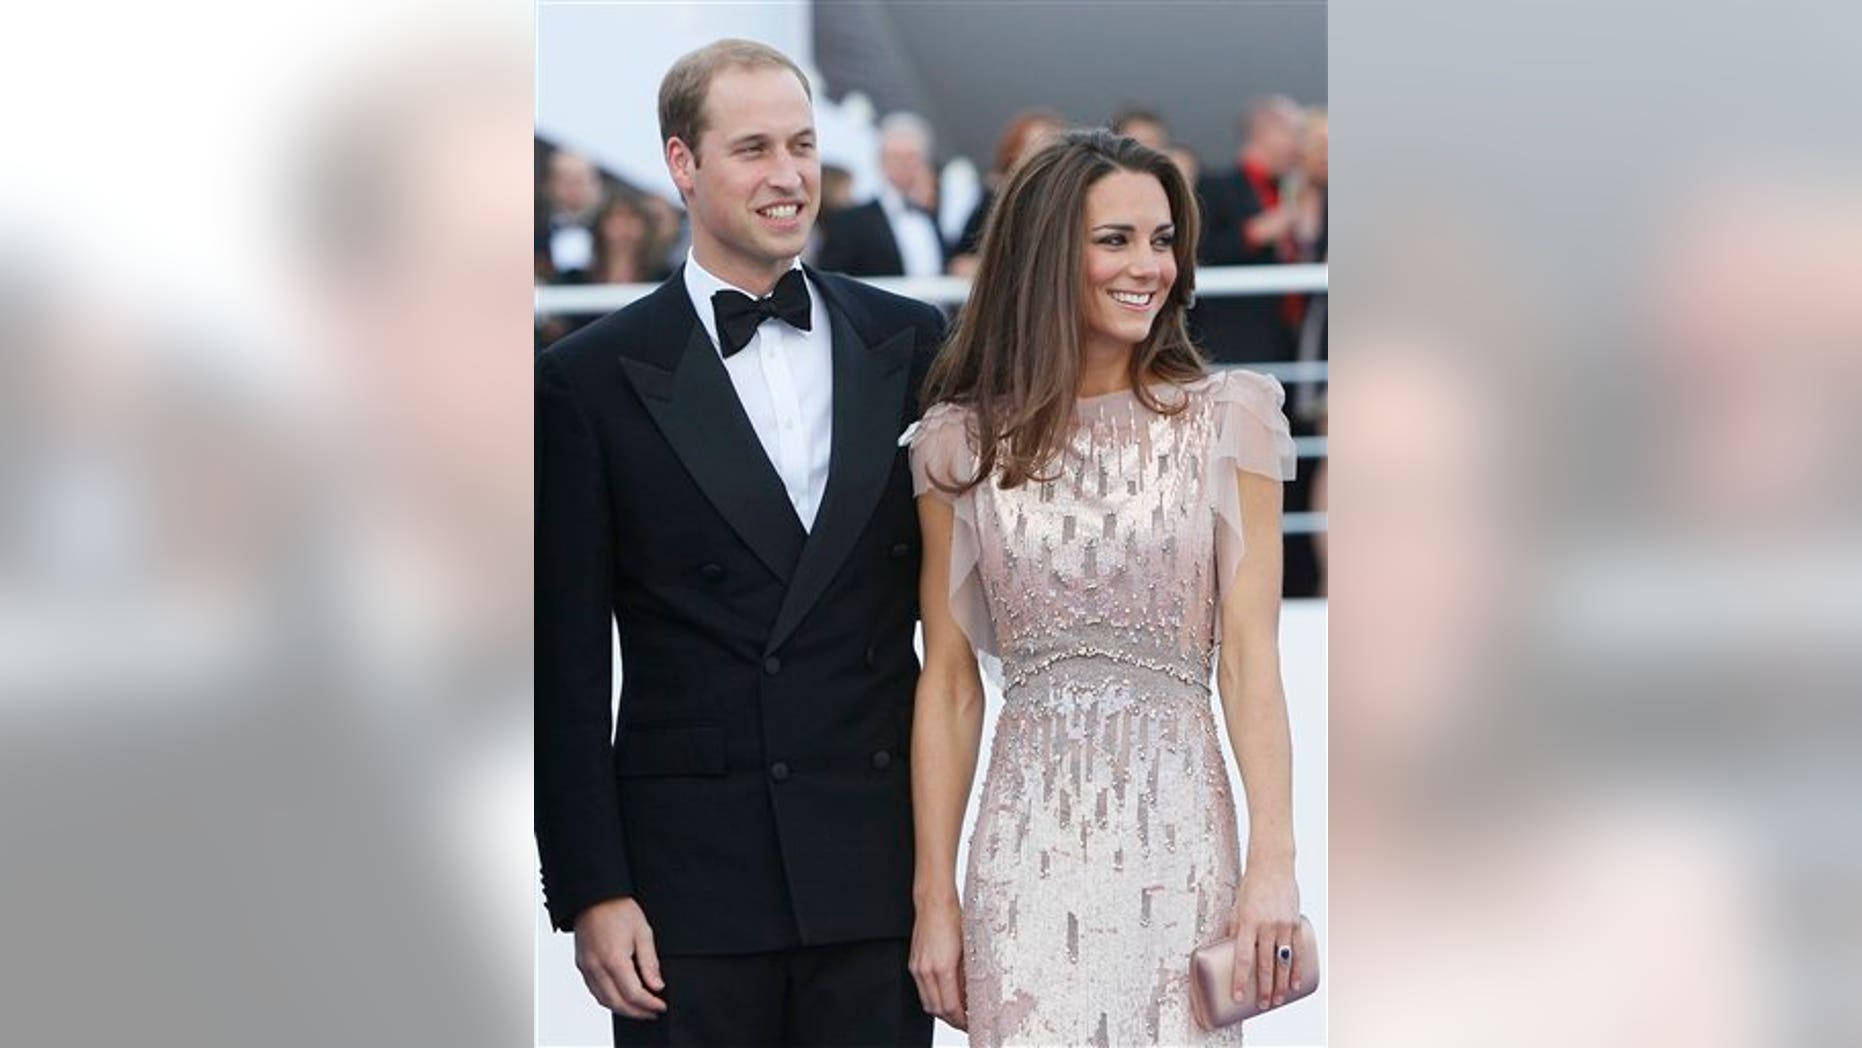 Britain's Prince William, the Duke of Cambridge,  and his wife Kate, Duchess of Cambridge arrive at a charity event for Absolute Return for Kids, ARK, in central London, Thursday, June, 9, 2011. The charity event is the first official engagement for the couple since they were married on April 29.(AP Photo/Alastair Grant)